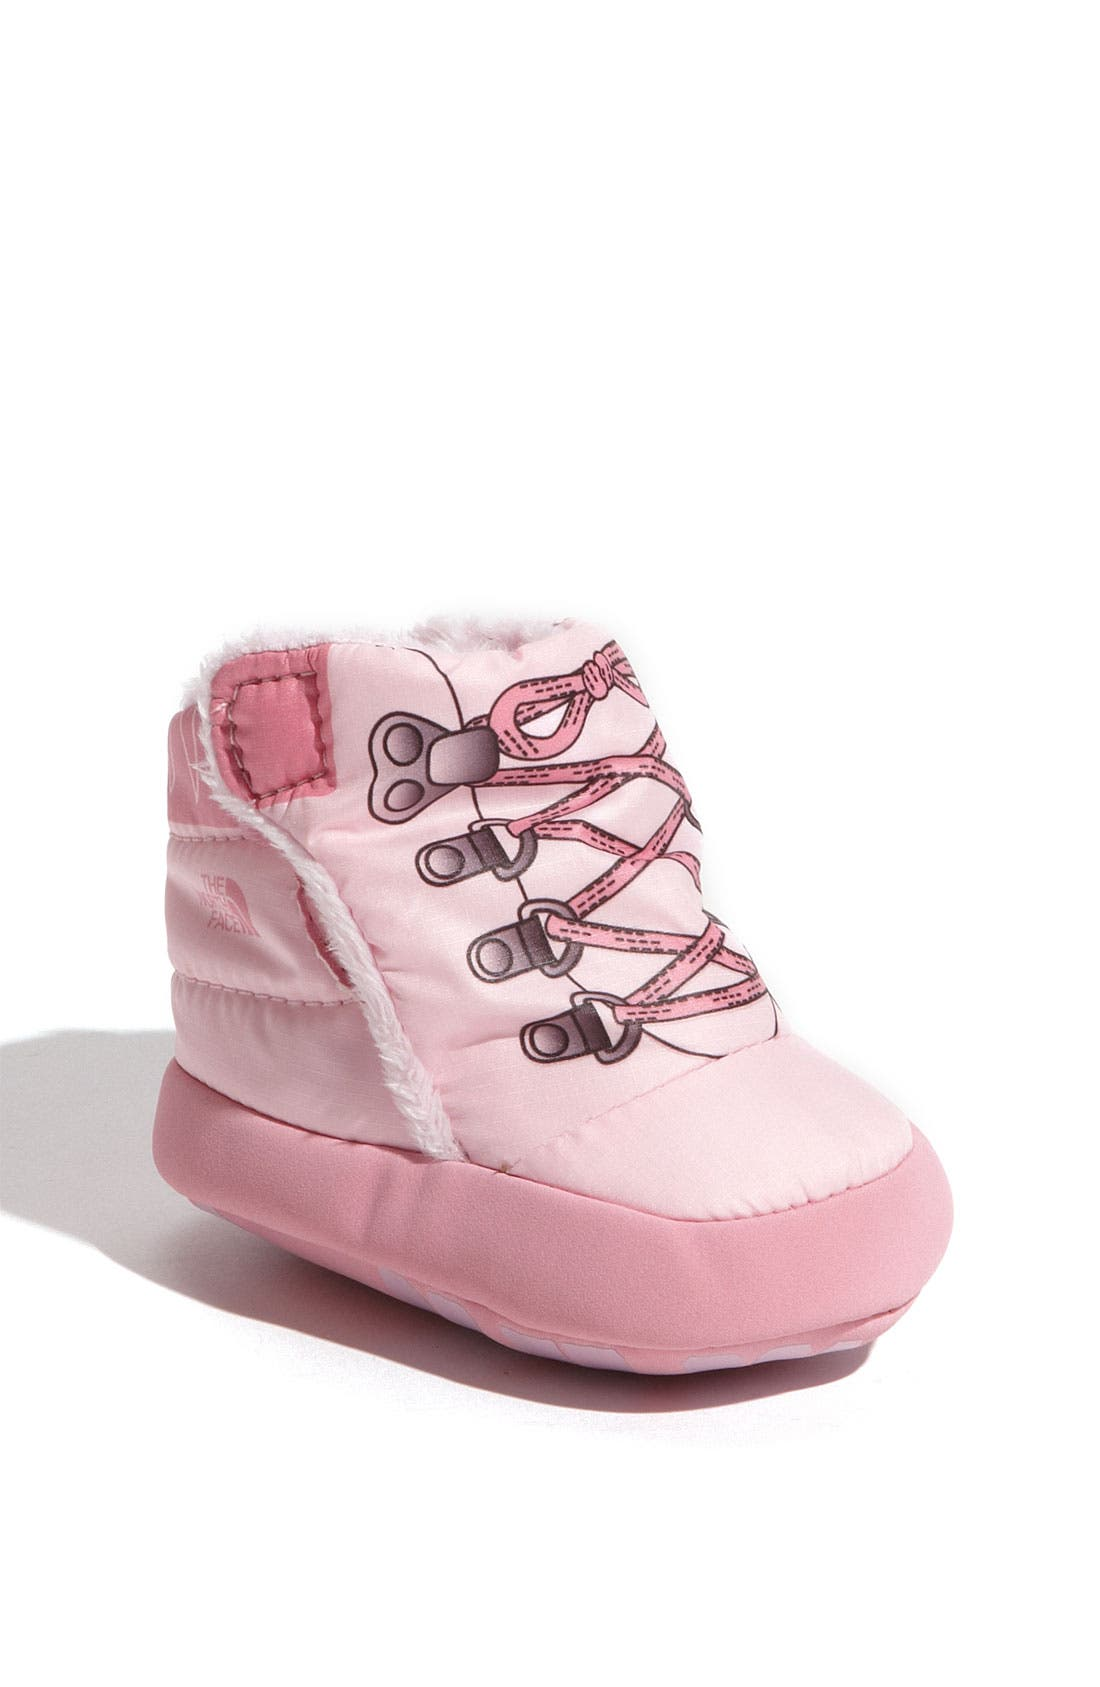 Main Image - The North Face Bootie (Baby)